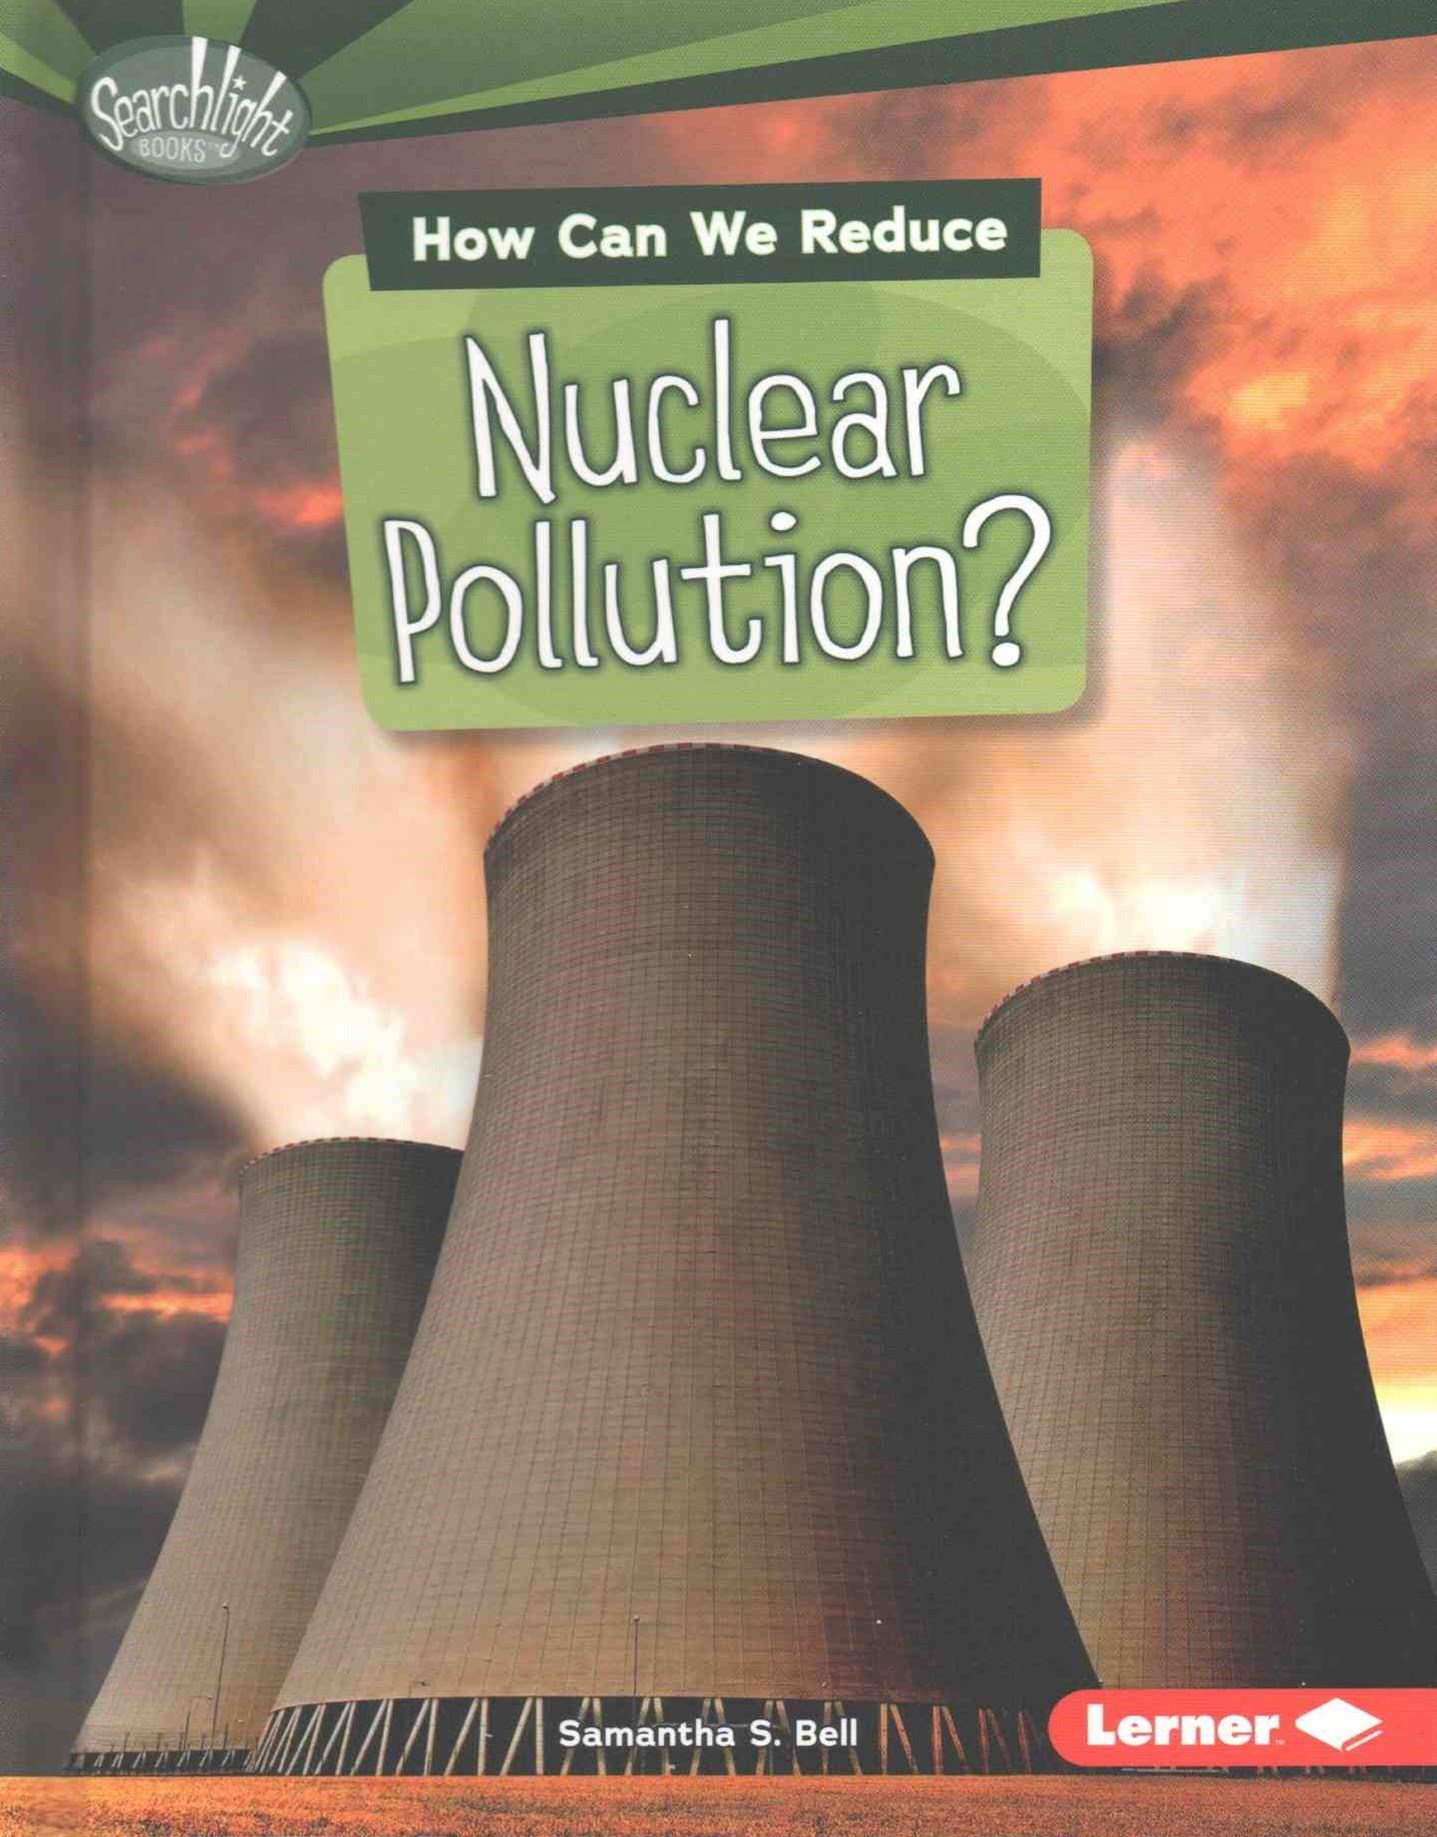 How Can We Reduce Nuclear Pollution?